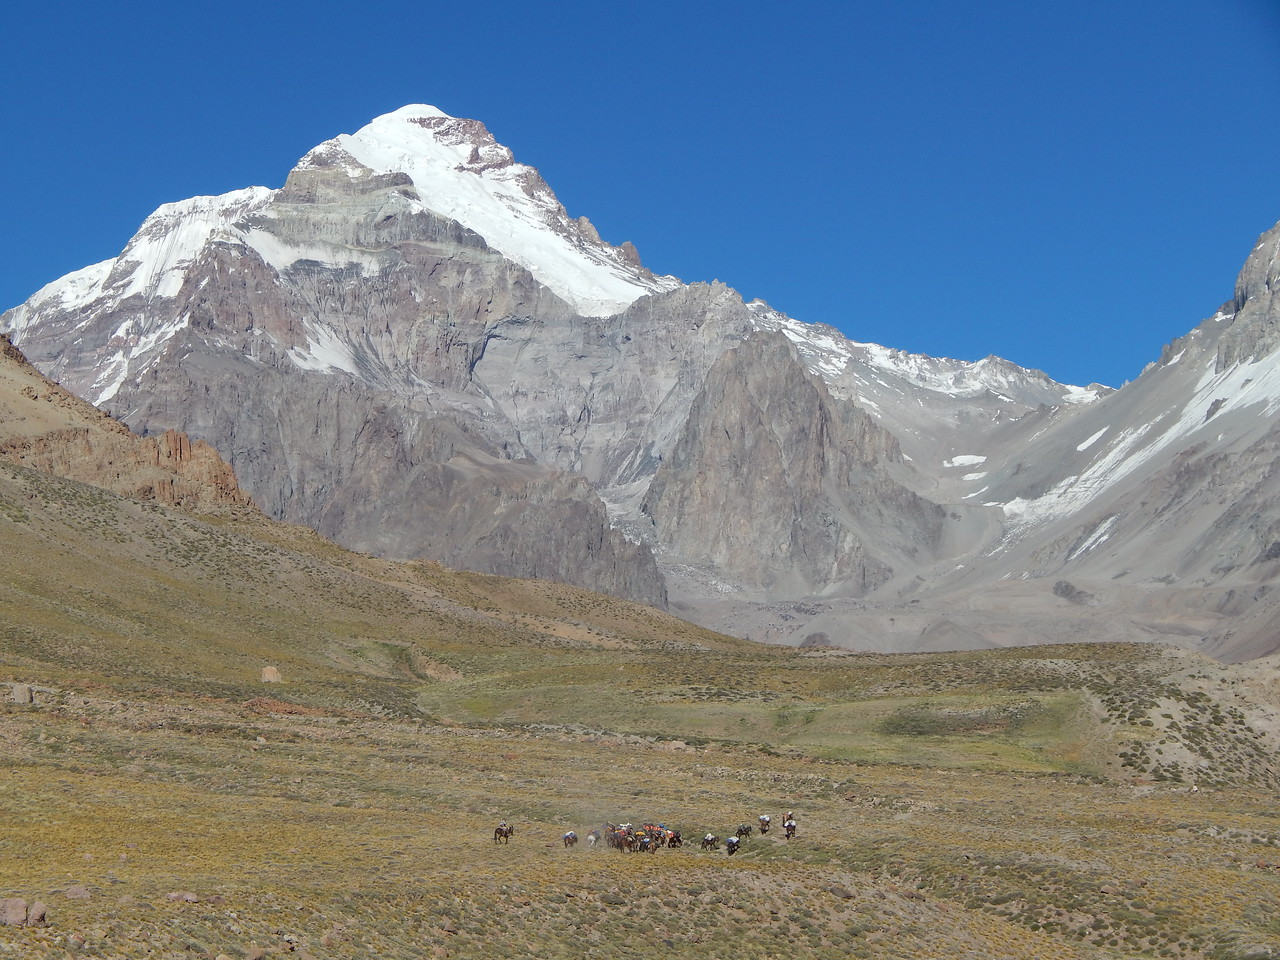 The mules carrying loads to Base Camp